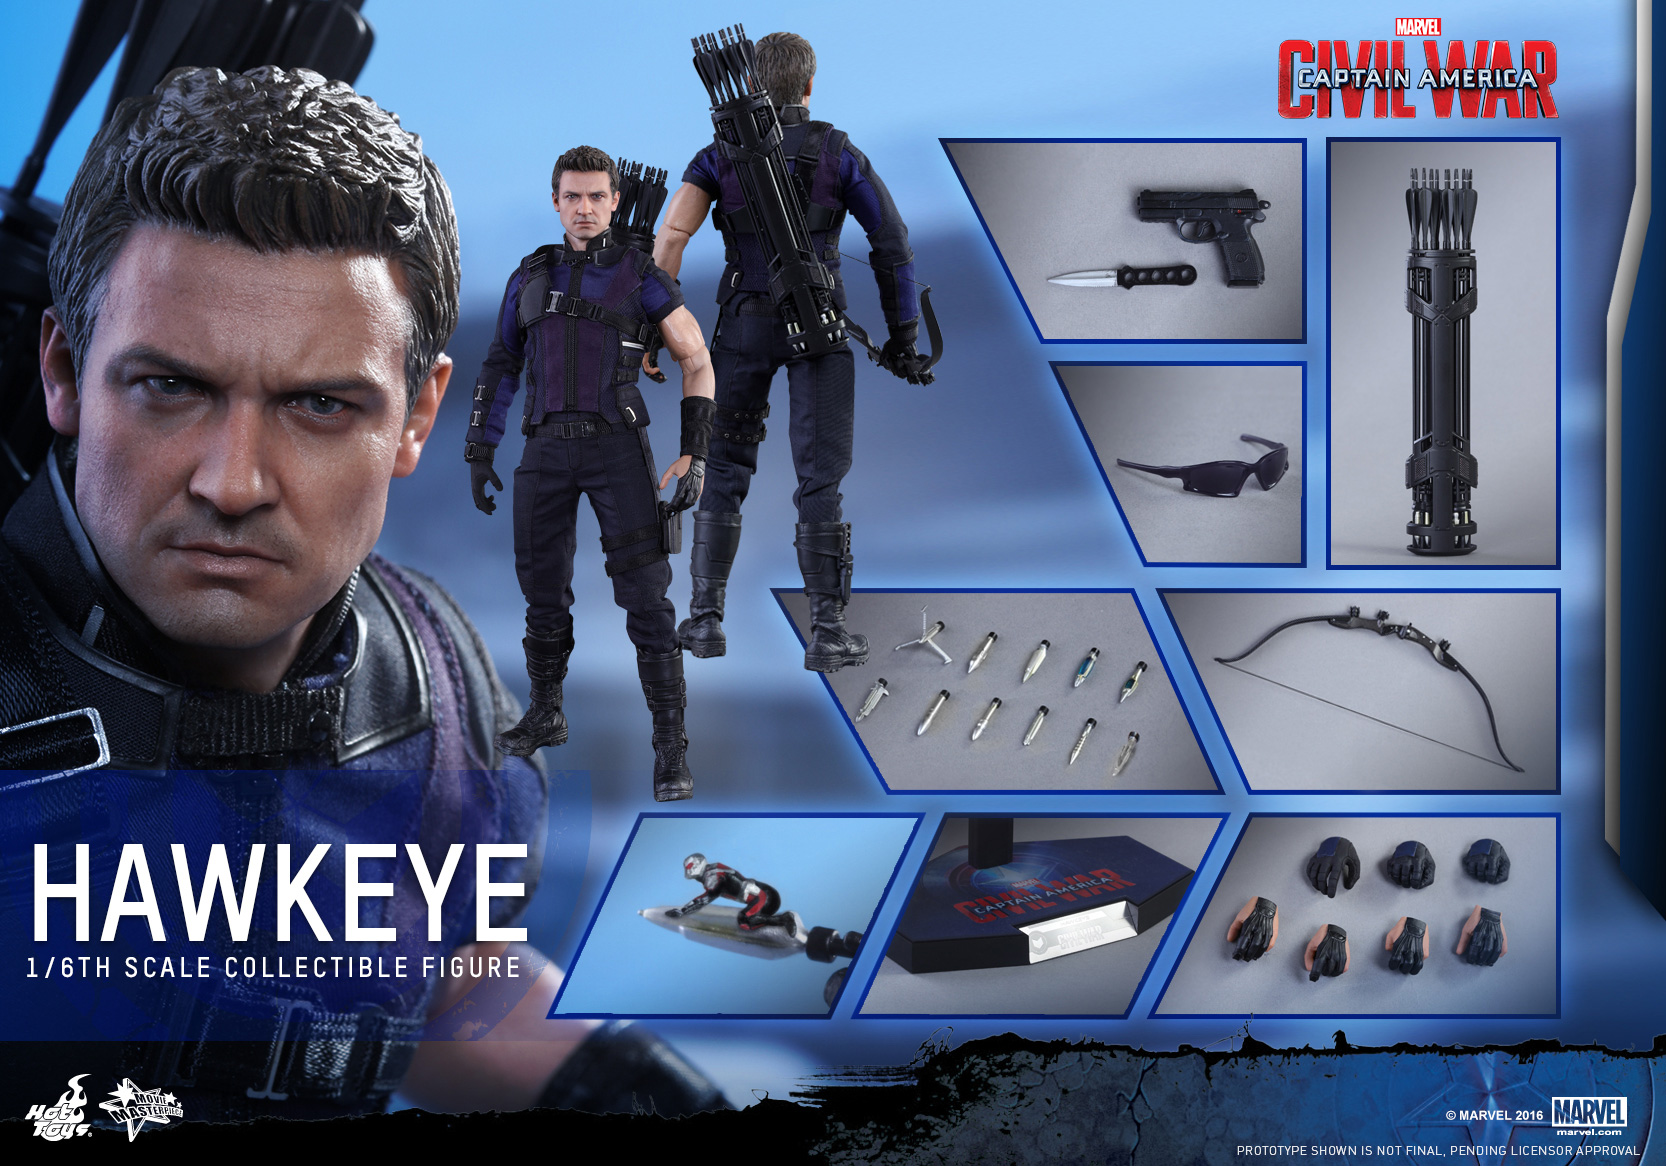 a703ad76 1/6 Hot Toys MMS358 Captain America: Civil War Hawkeye Collectible Figure  [Archive] - Sideshow Freaks